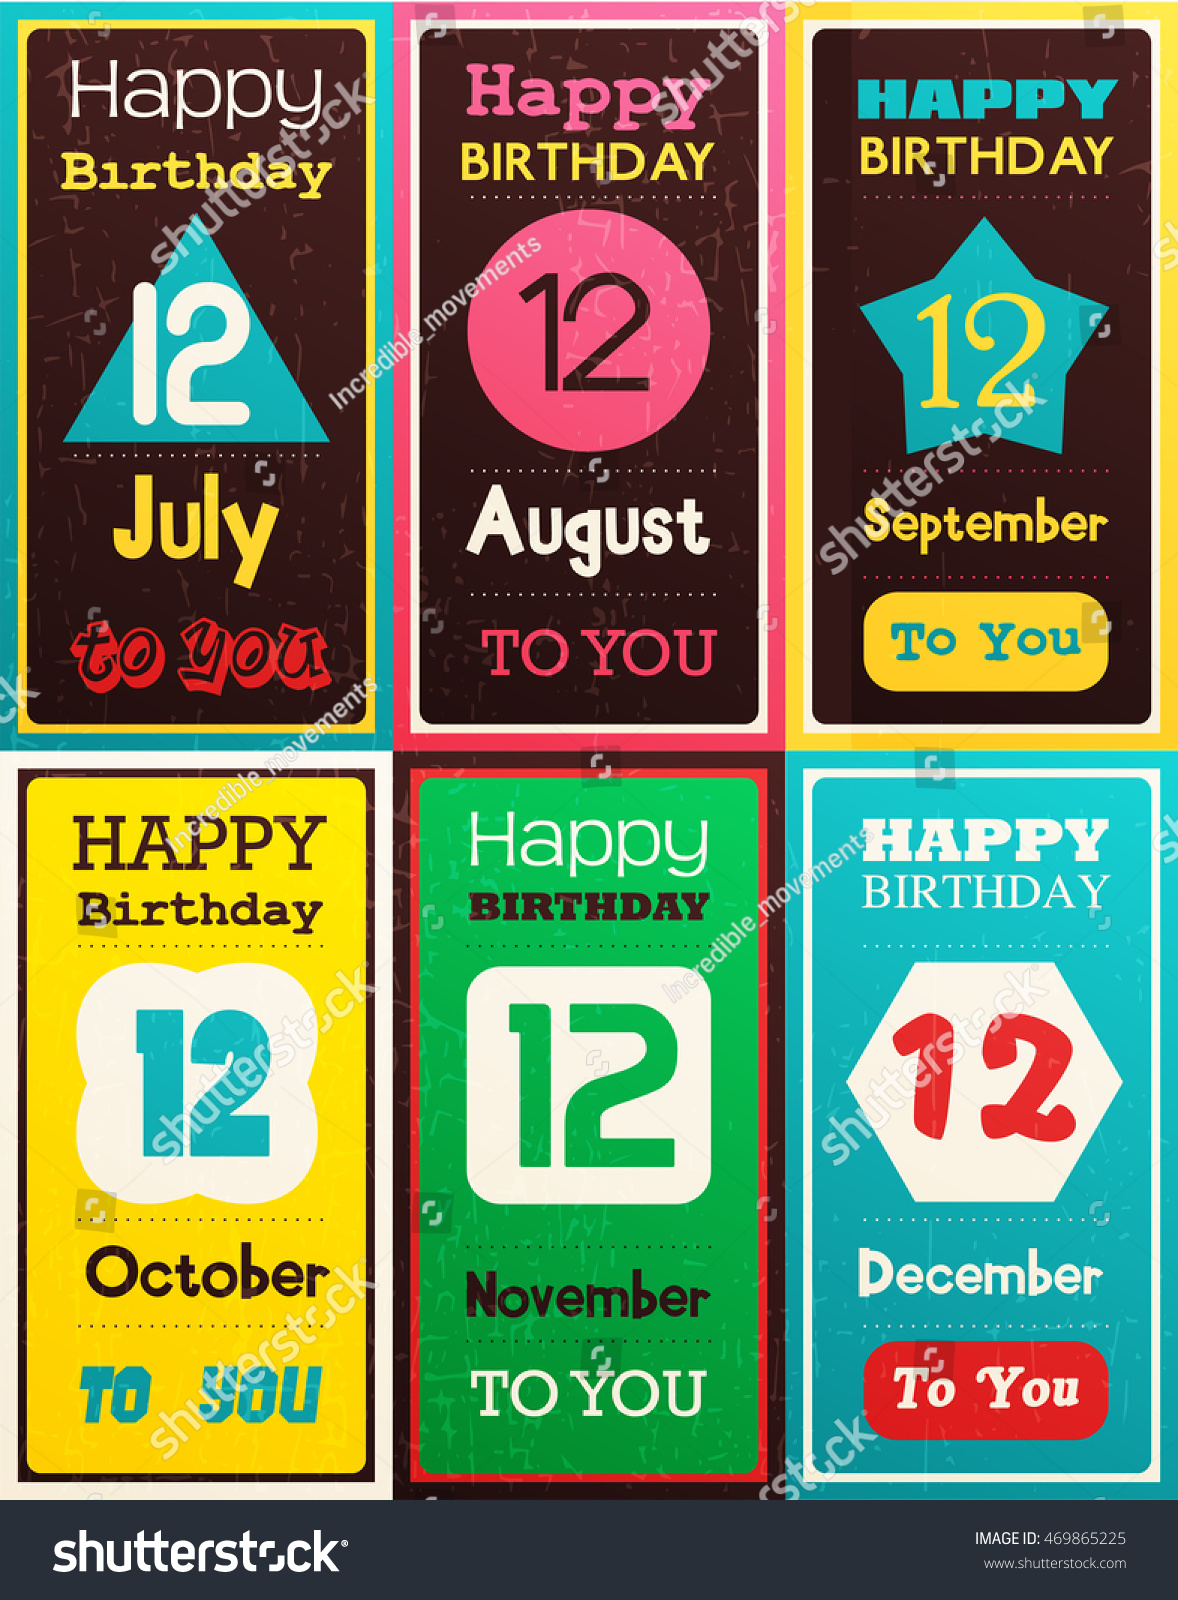 Greeting Happy Birthday Card Date Twelve Of Birth By Month July August September